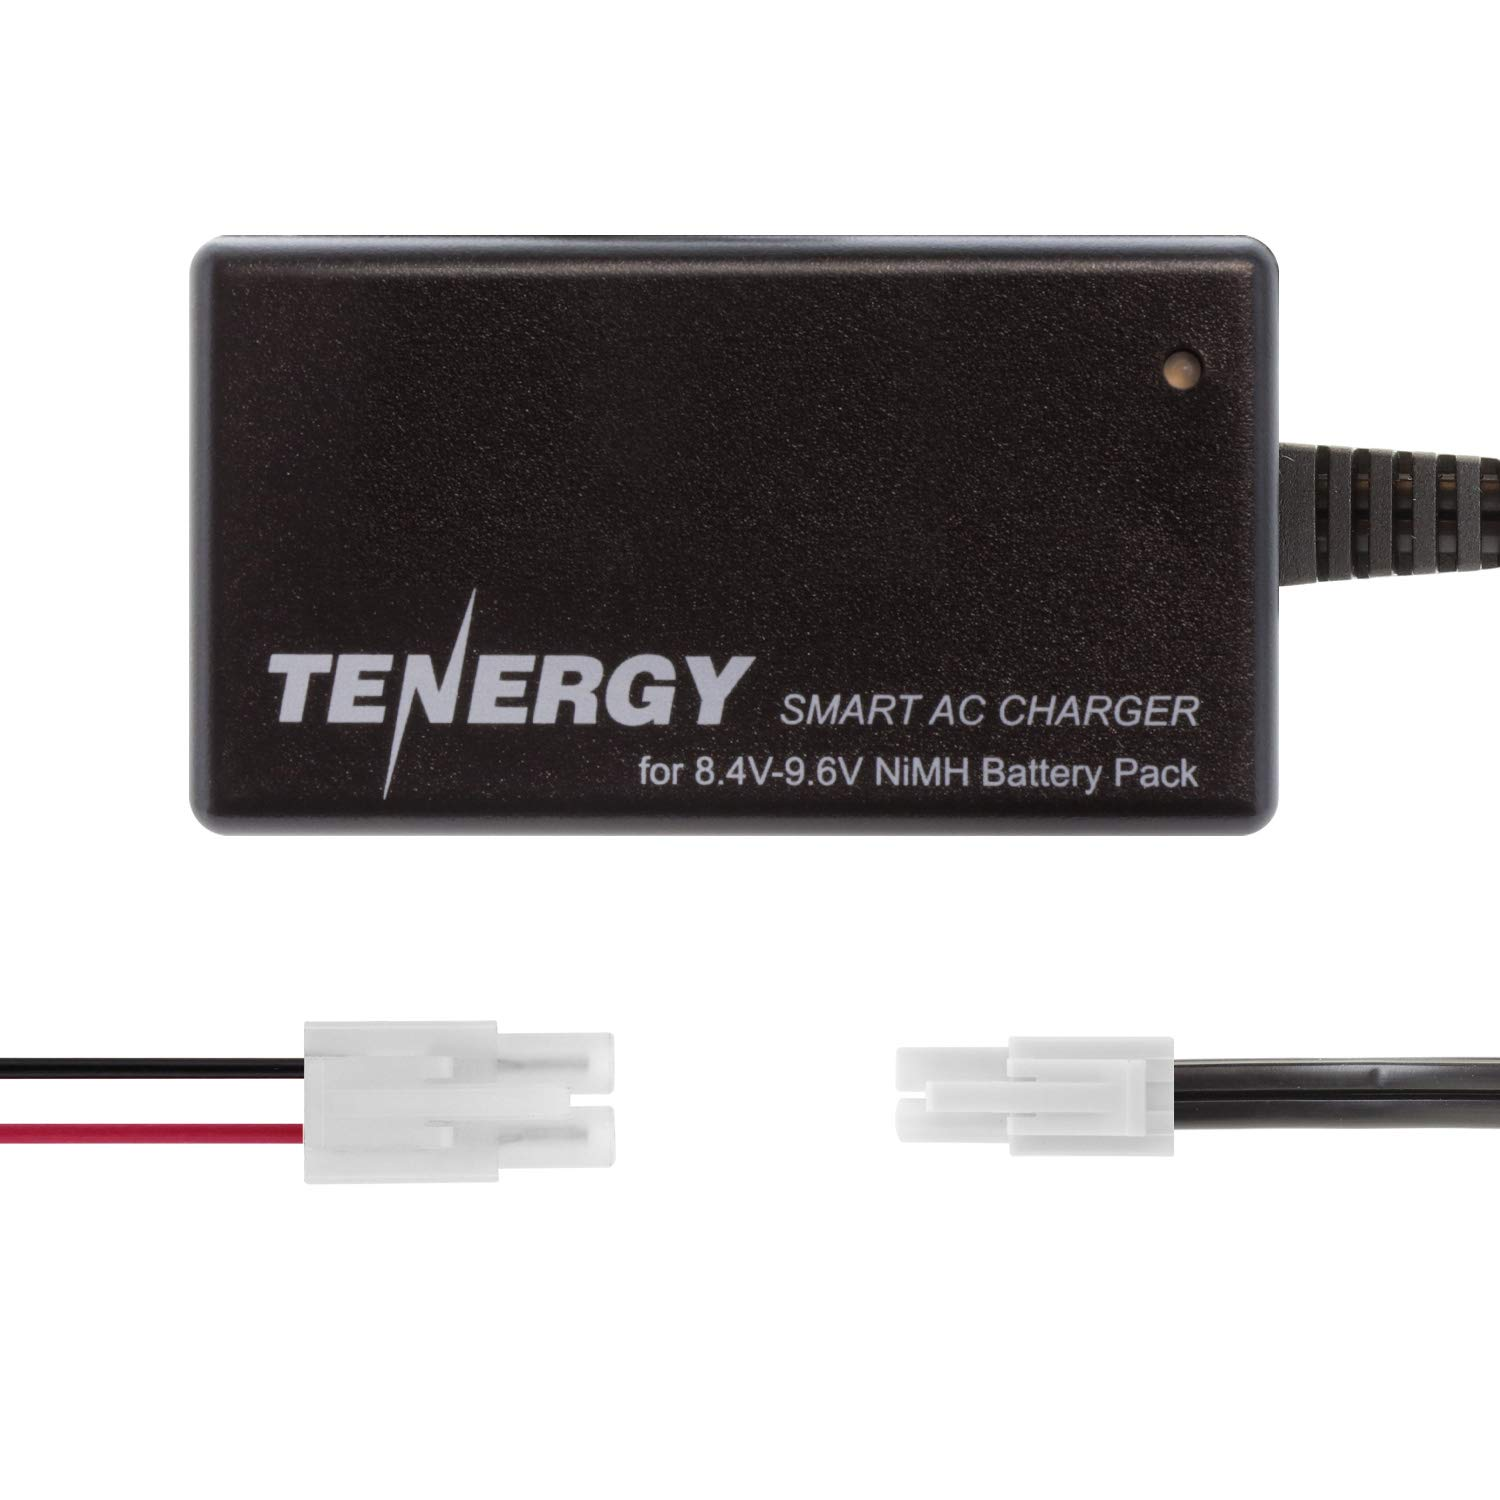 Tenergy Smart Charger for 8.4V-9.6V NiMH Battery Packs w/Mini Tamiya Connector + Standard Tamiya Adapter